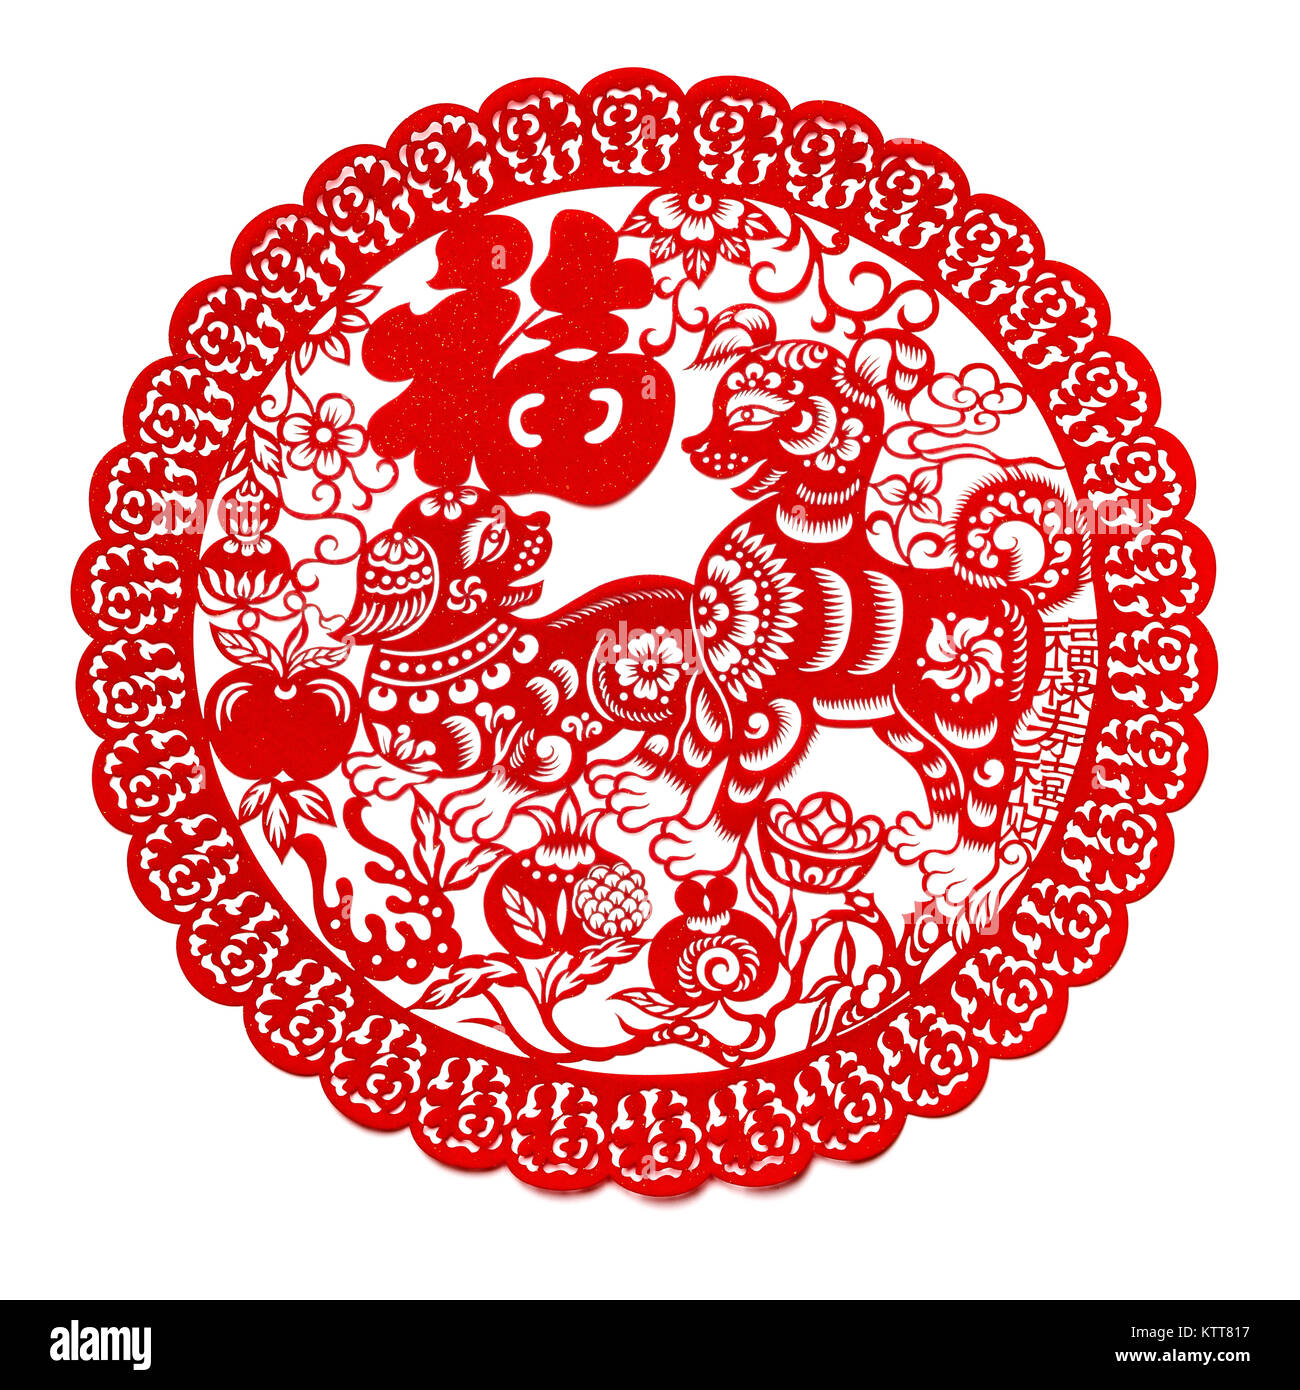 red flat paper-cut on white as a symbol of Chinese New Year of the Dog 2018 the Chinese means fortune and family - Stock Image